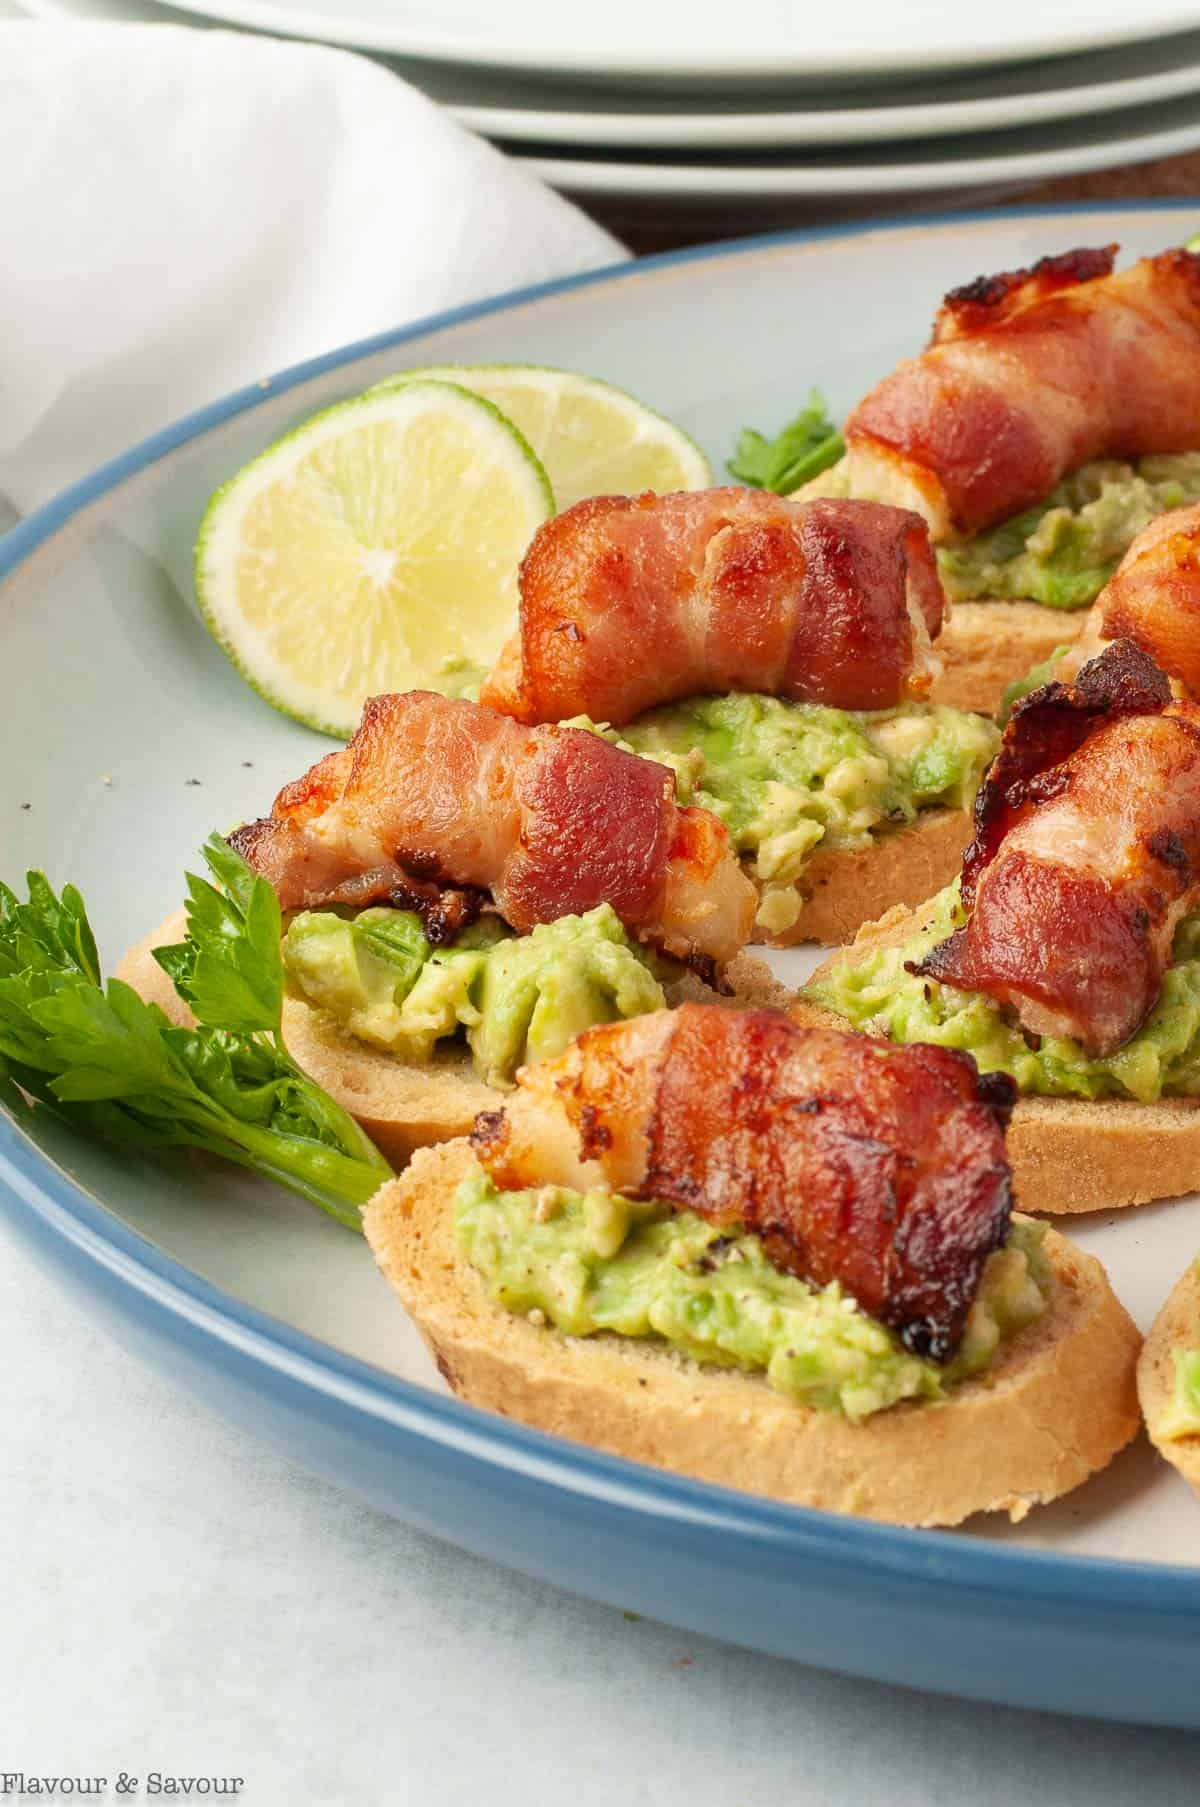 A plate filled with Bacon-Wrapped Shrimp (or Prawn) Tapas, a crostini topped with avocado and a bacon wrapped shrimp.